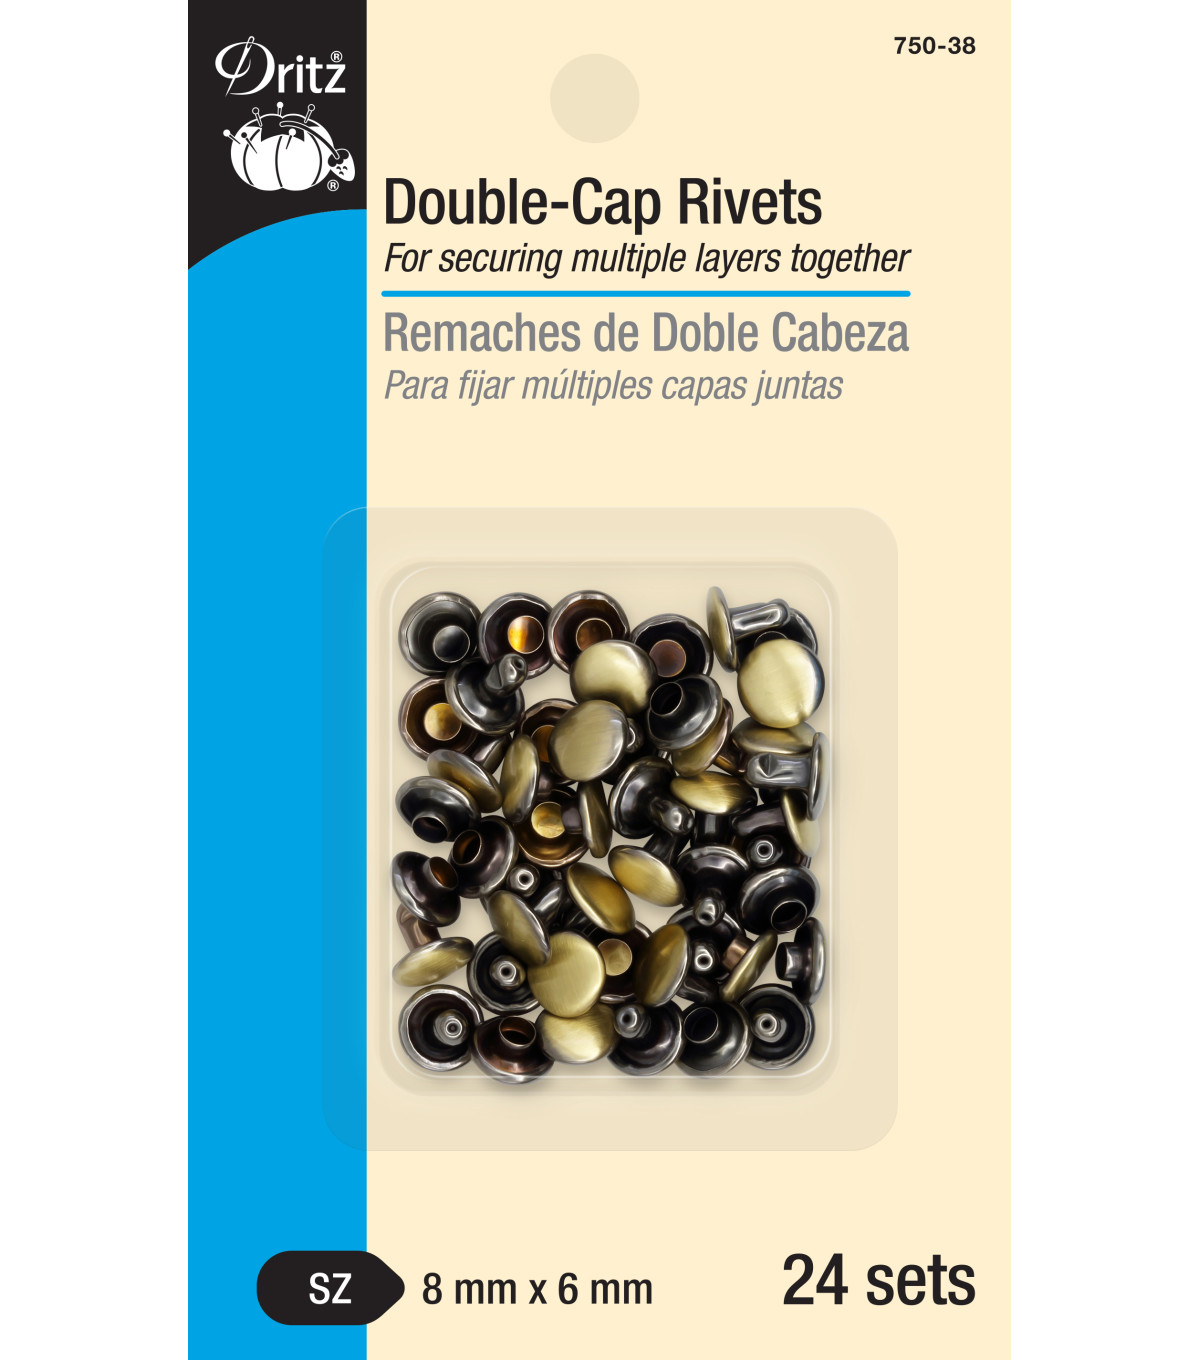 Dritz Double Cap Rivets-Brushed Antique Brass